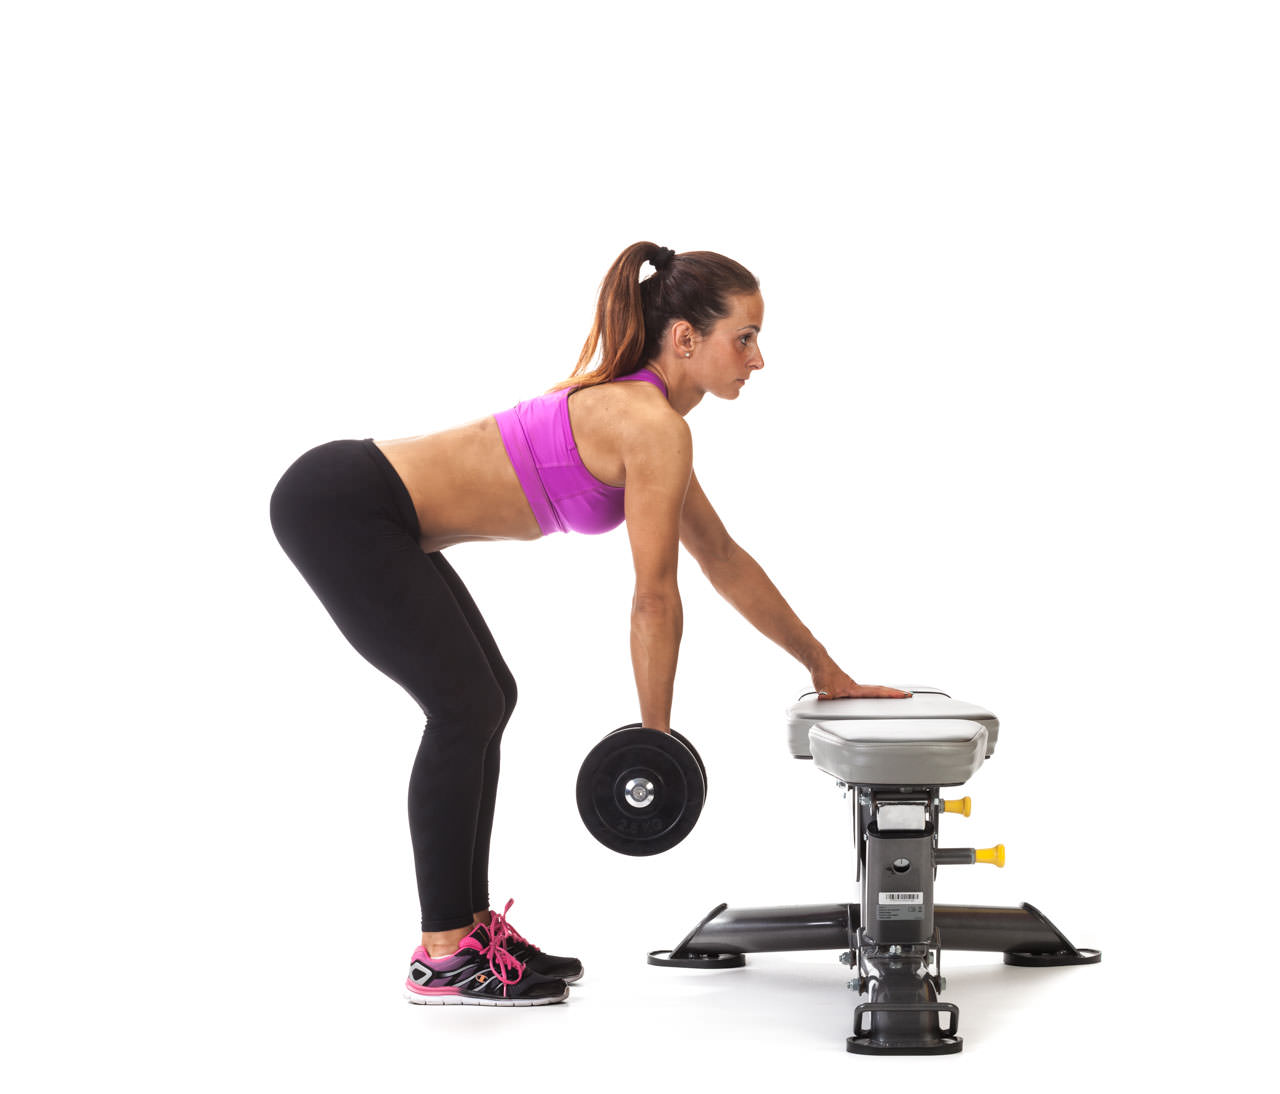 Bent Over One-Arm Dumbbell Row frame #1